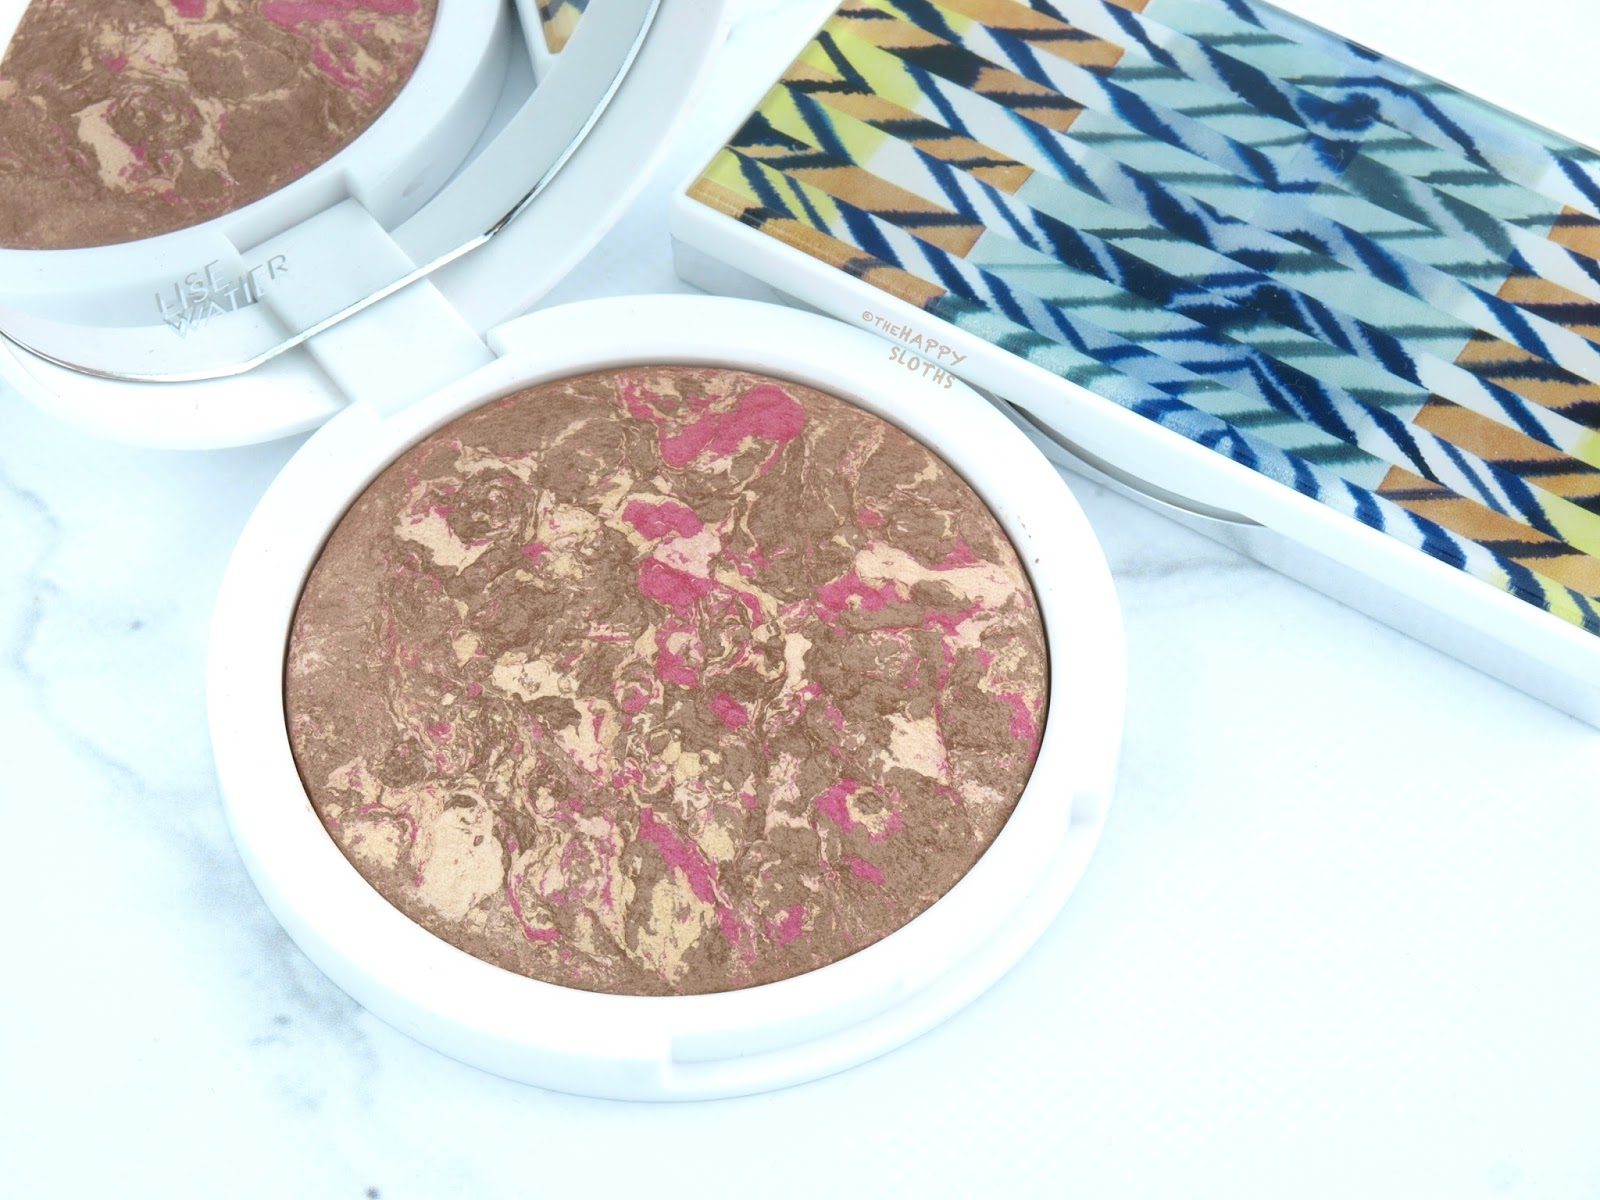 Lise Watier Summer 2017 Luxotika Bronzer: Review and Swatches